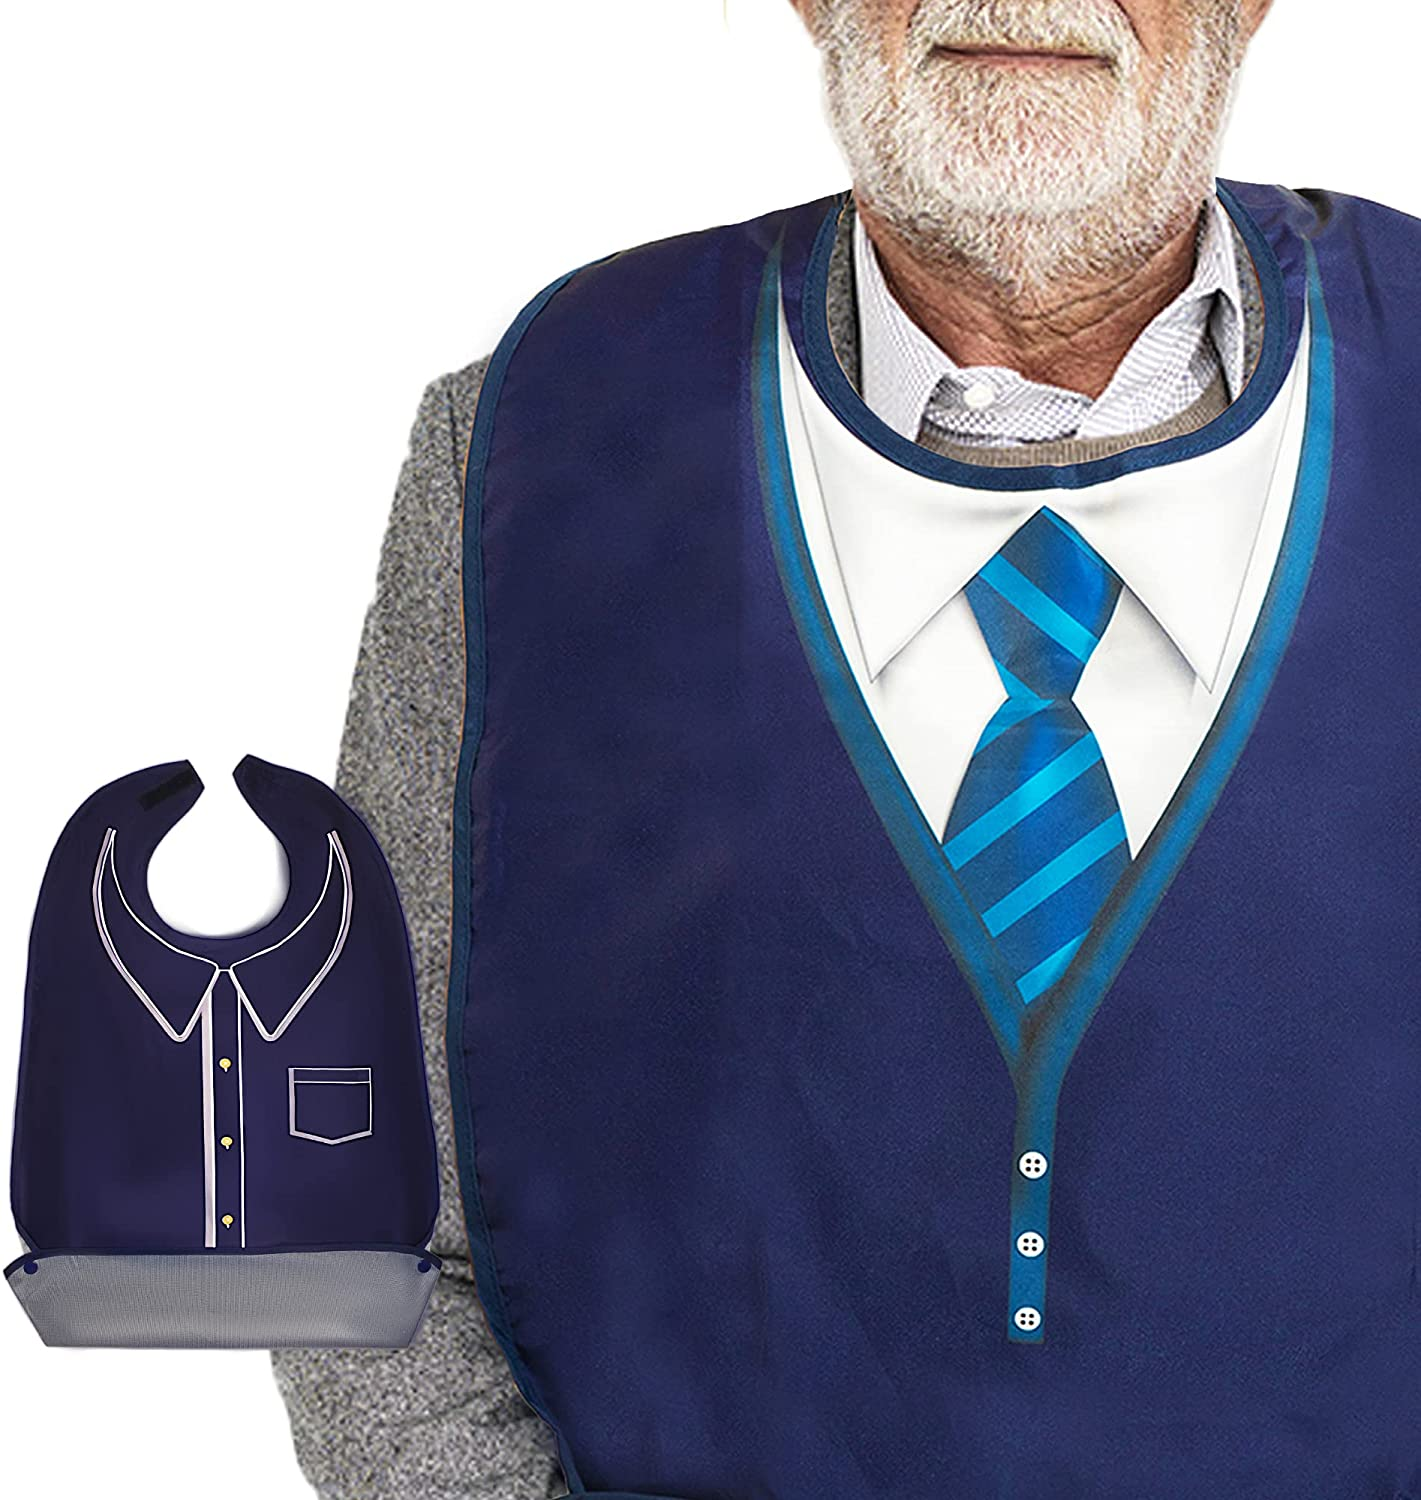 Classy Pal Adult 5% OFF Bibs for Men Wipe Super sale period limited Clothing 'n Wear Protec